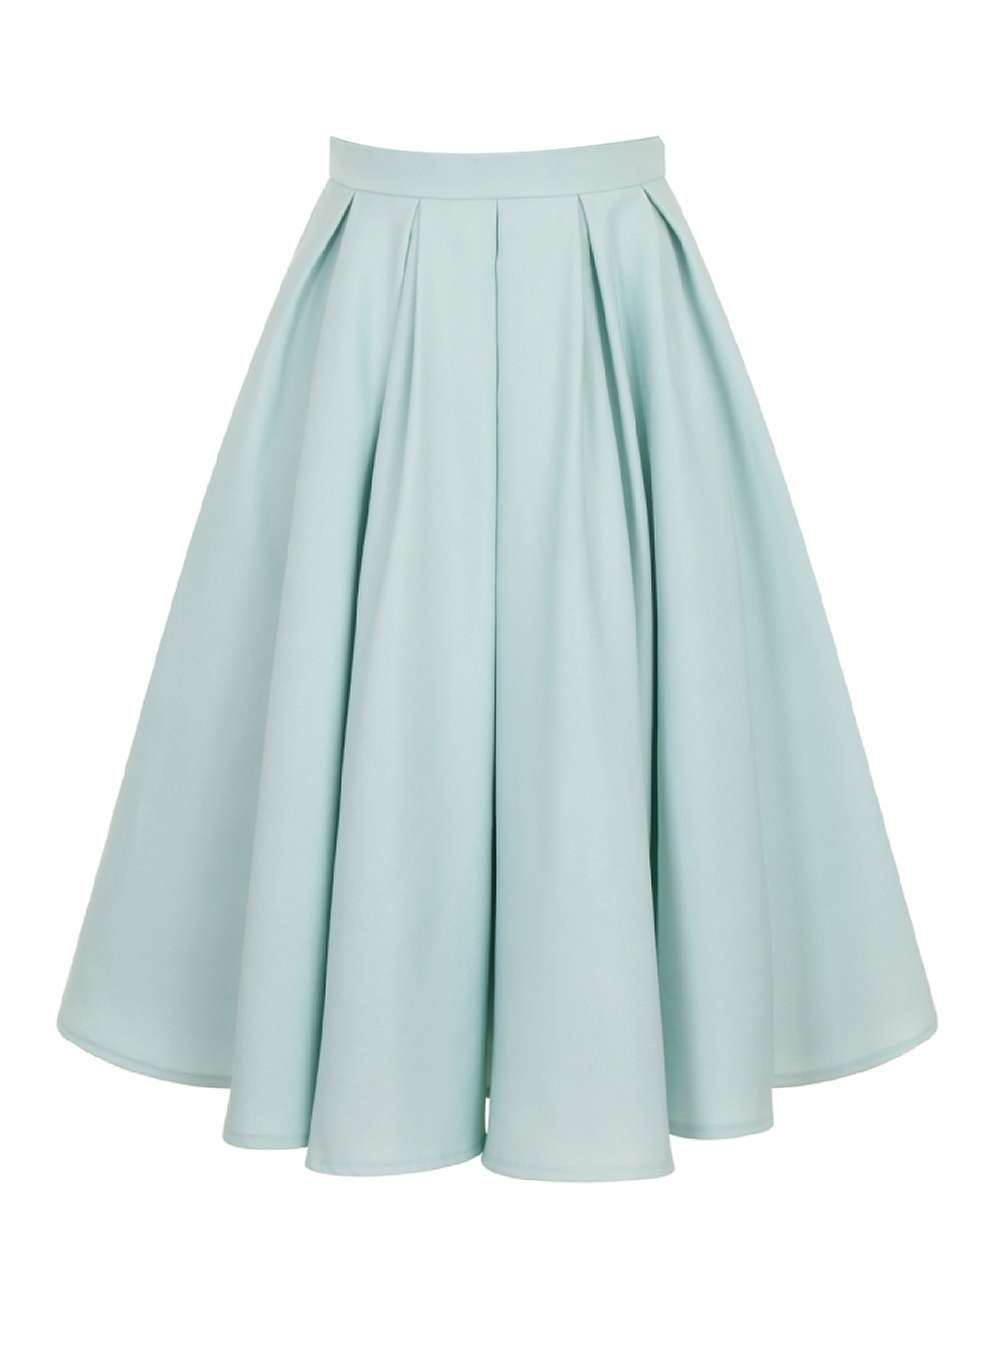 Womens **Chi Chi London Pleated Midi Skirt Blue - length: below the knee; pattern: plain; style: full/prom skirt; fit: loose/voluminous; waist: mid/regular rise; predominant colour: pistachio; occasions: casual, evening; fibres: polyester/polyamide - 100%; pattern type: fabric; texture group: other - light to midweight; season: a/w 2016; wardrobe: highlight